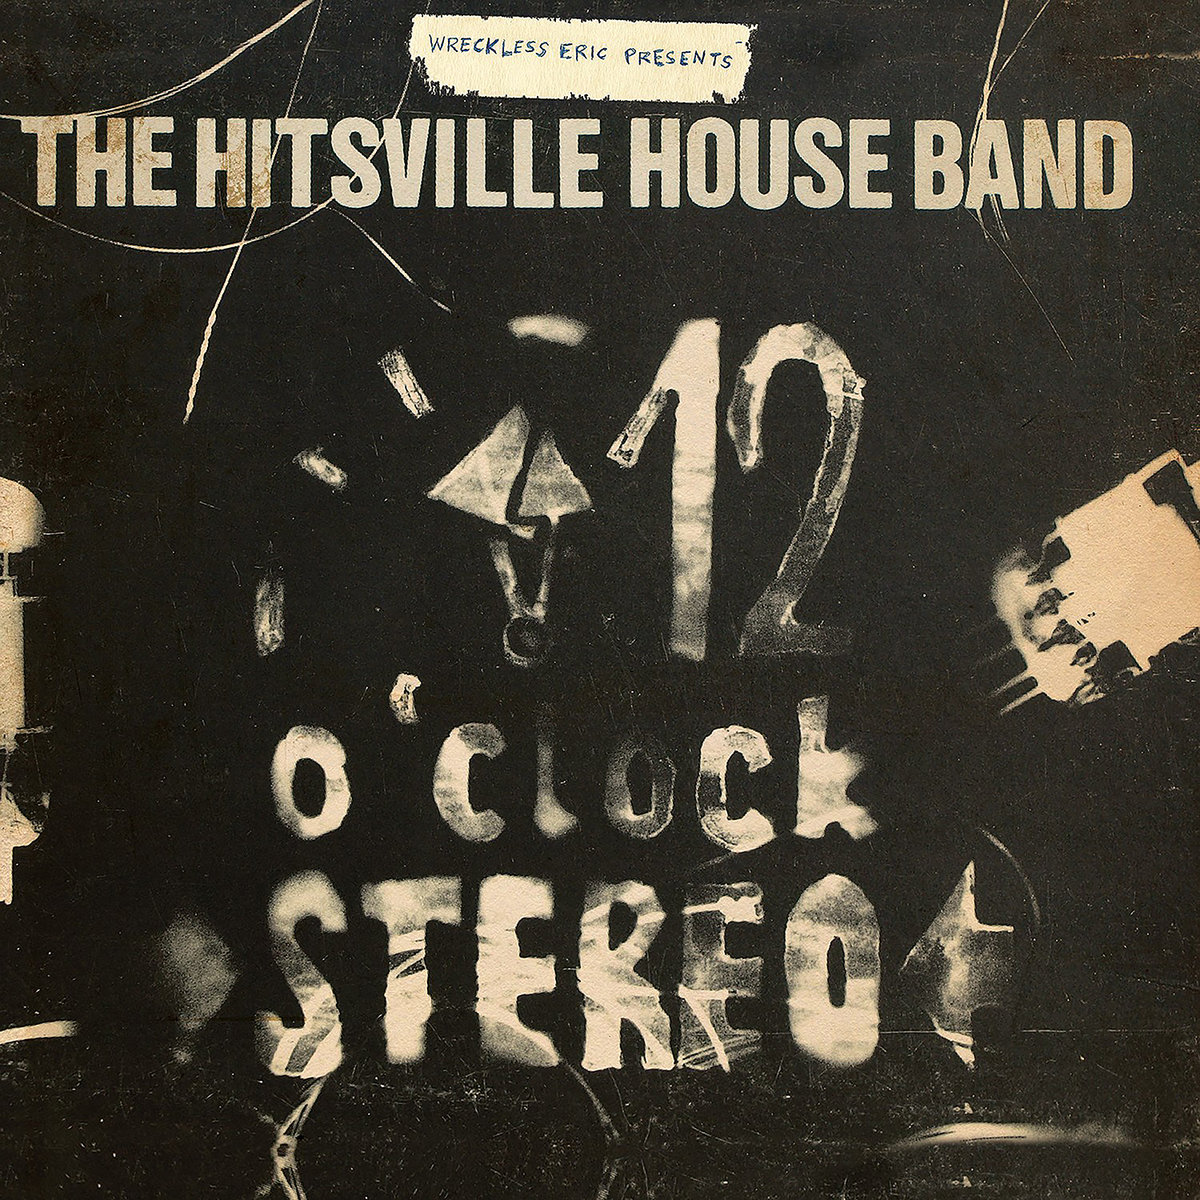 Wreckless Eric — Wreckless Eric Presents The Hitsville House Band '12 O'Clock Stereo'